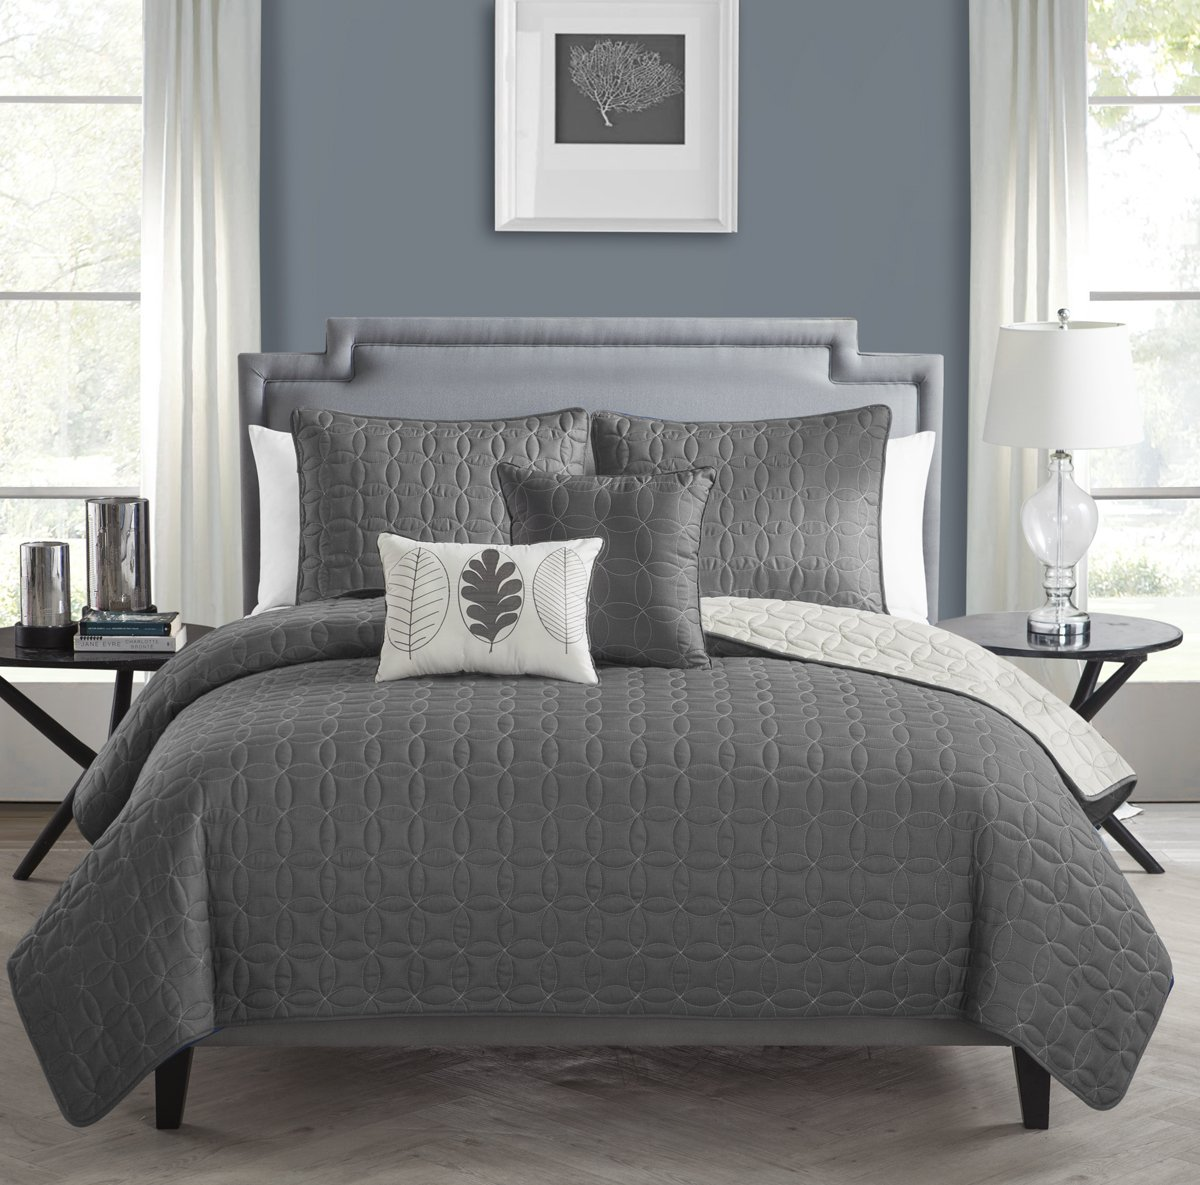 VCNY 5 Piece Hayden Quilt Set, Queen, Charcoal/Vanilla Ice